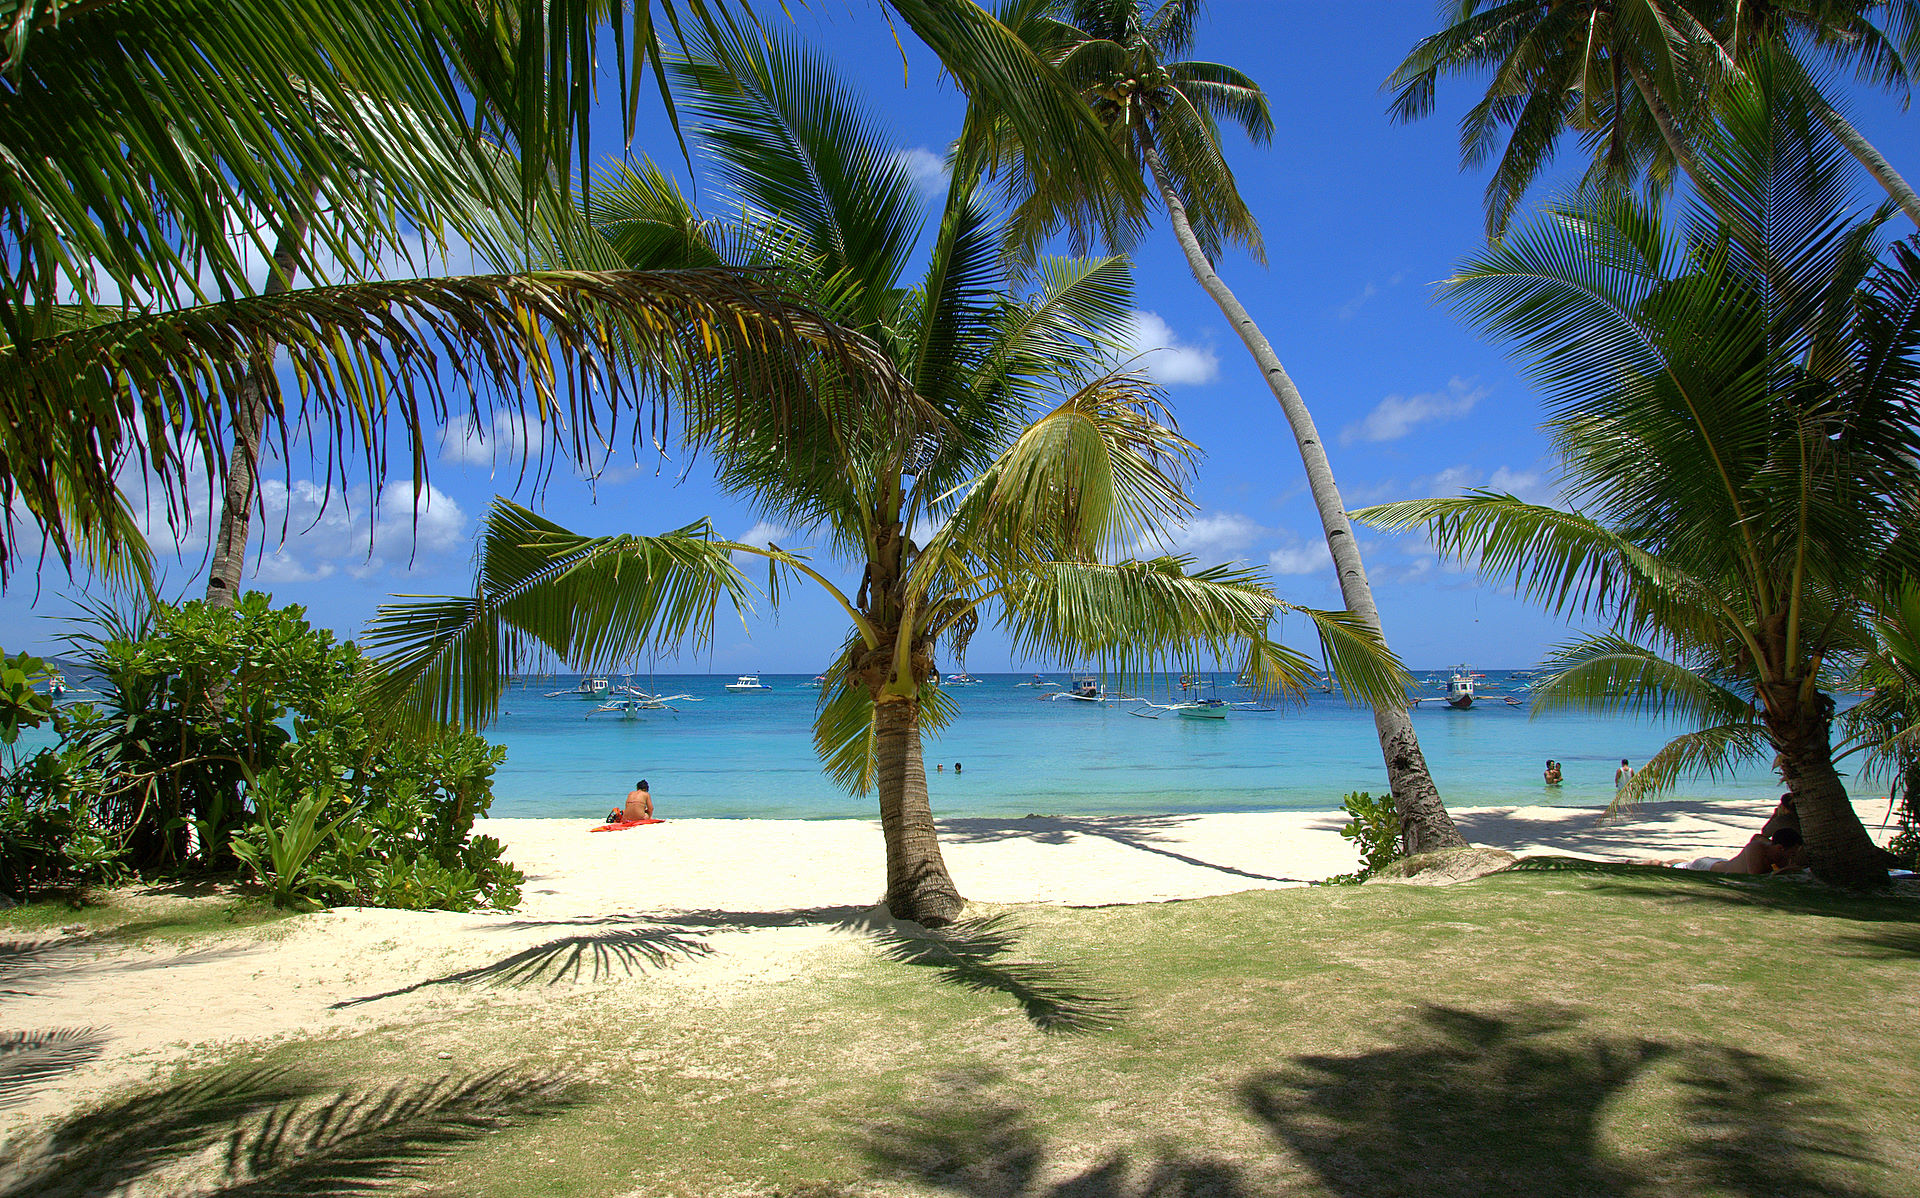 Hd Tropical Island Beach Paradise Wallpapers And Backgrounds: Beautiful Tropical Islands Desktop Wallpaper